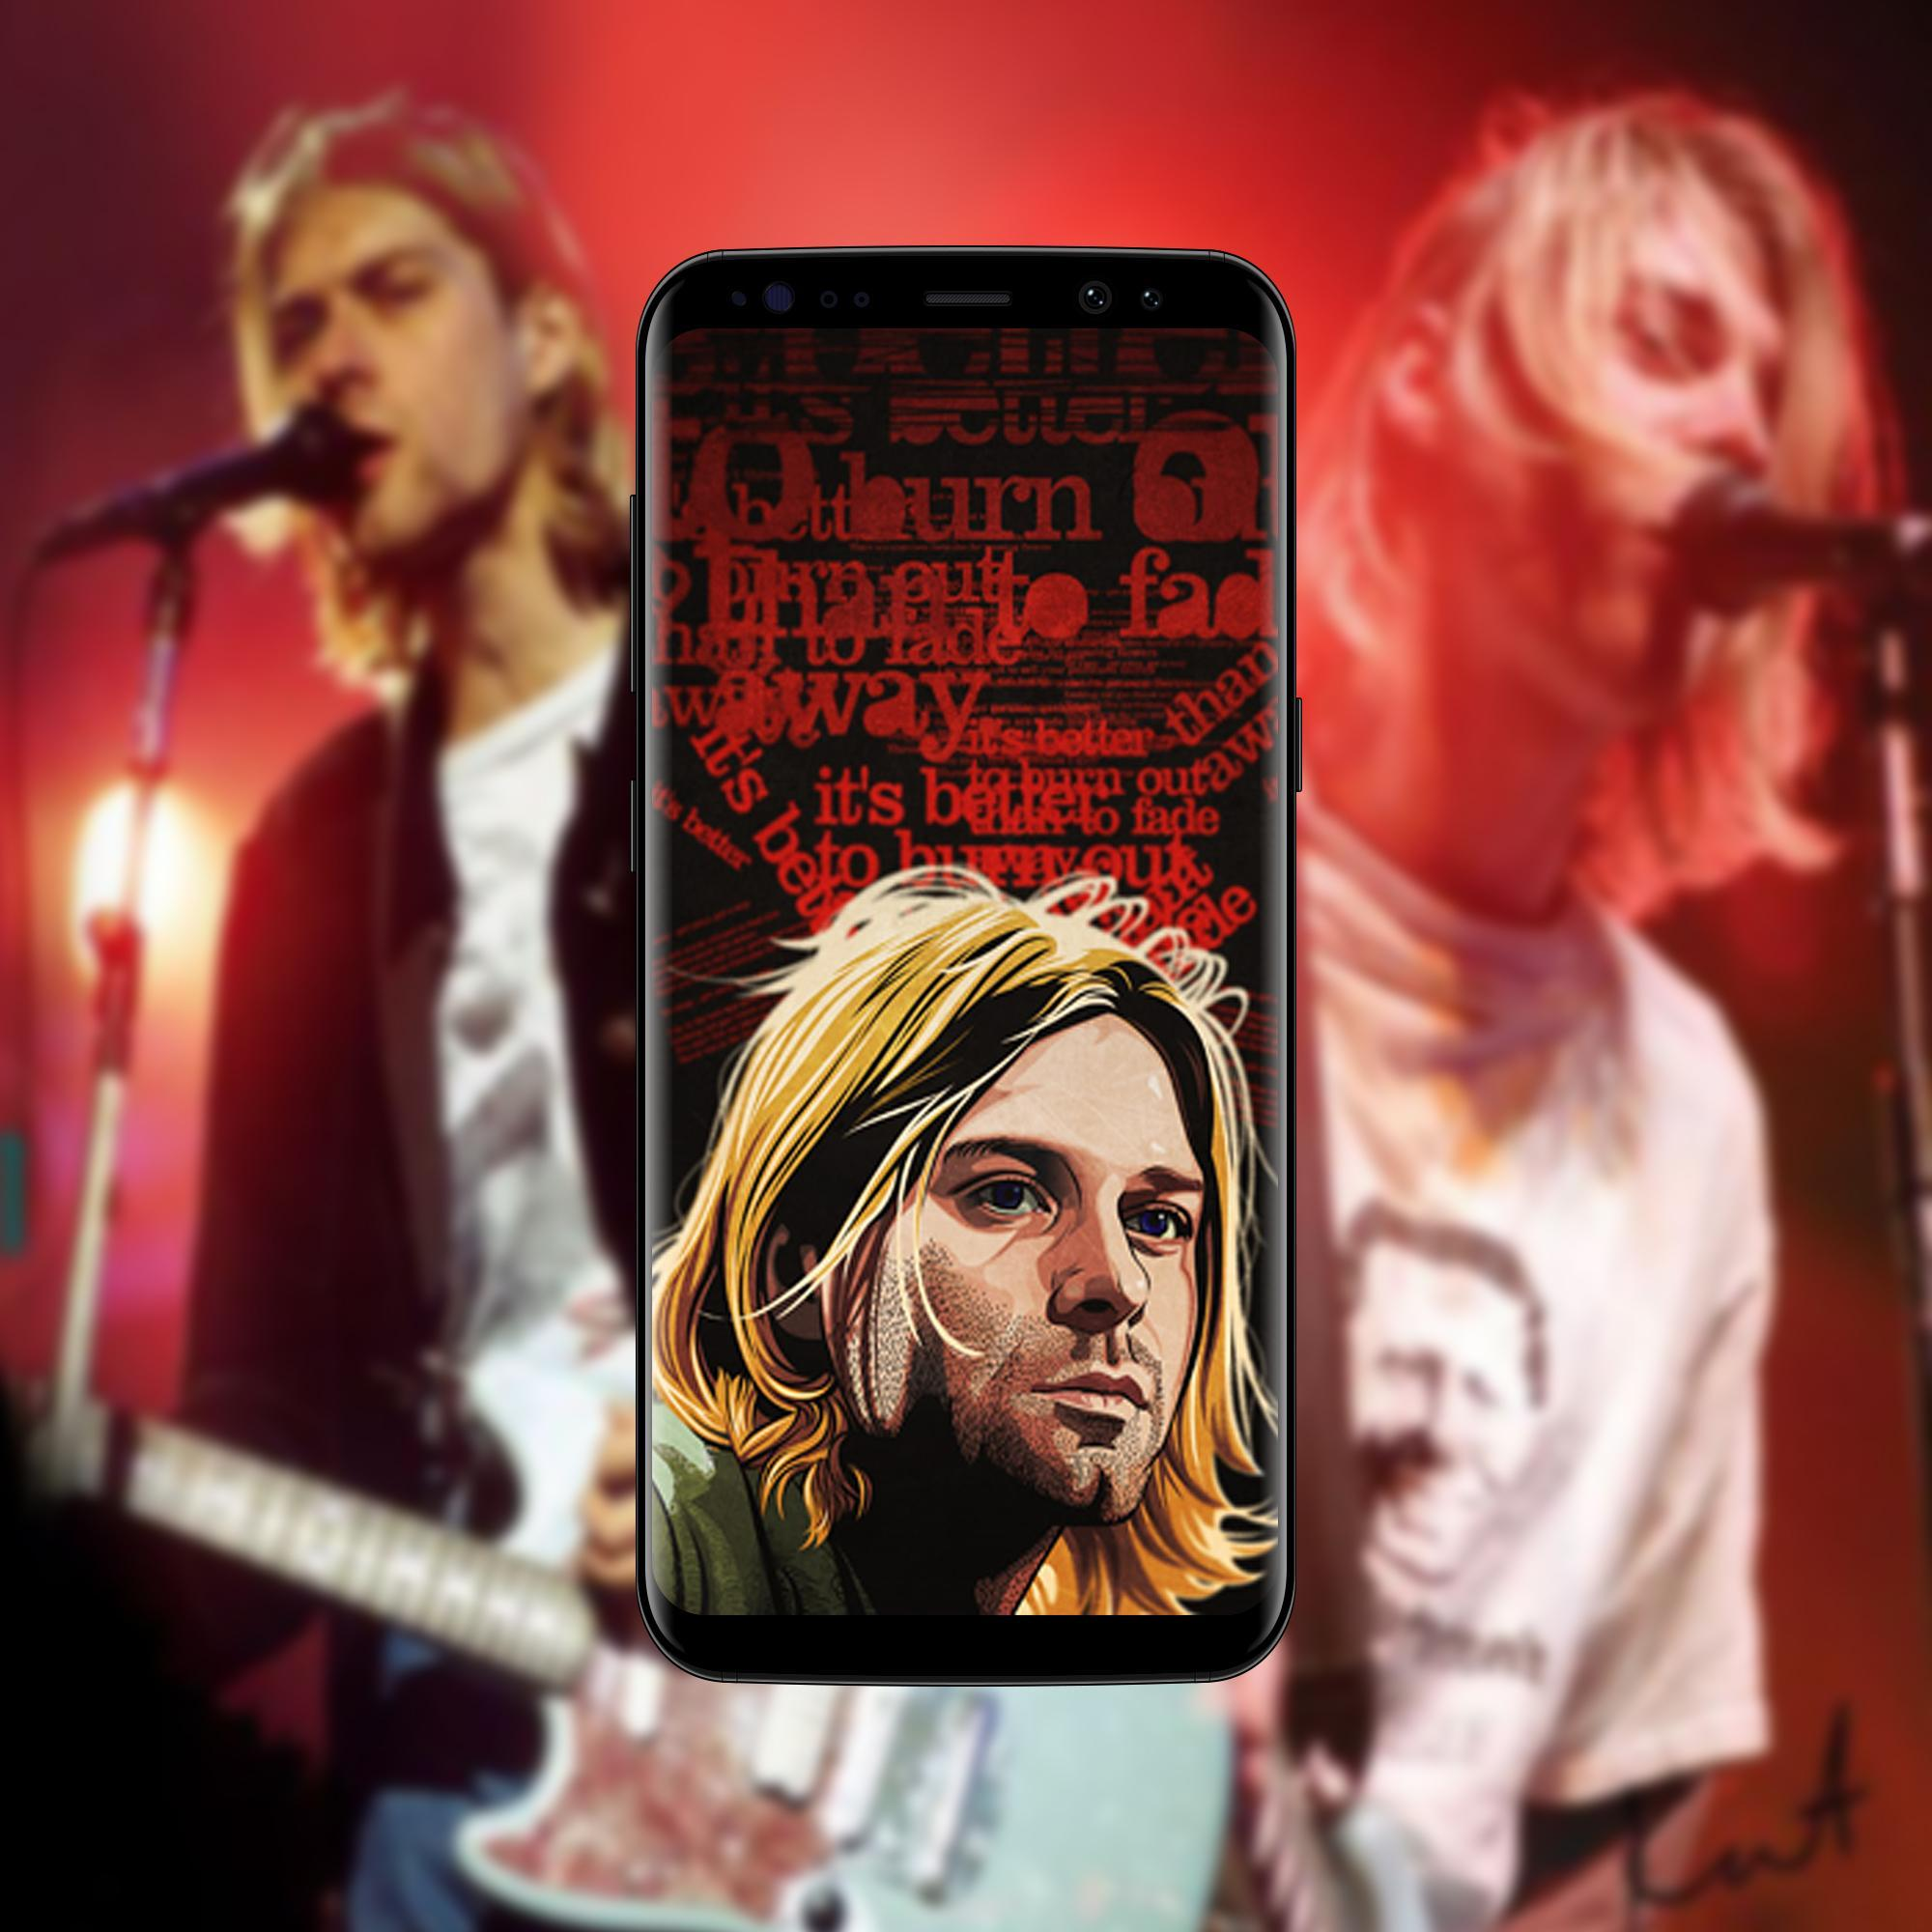 Kurt Cobain Wallpaper For Android Apk Download